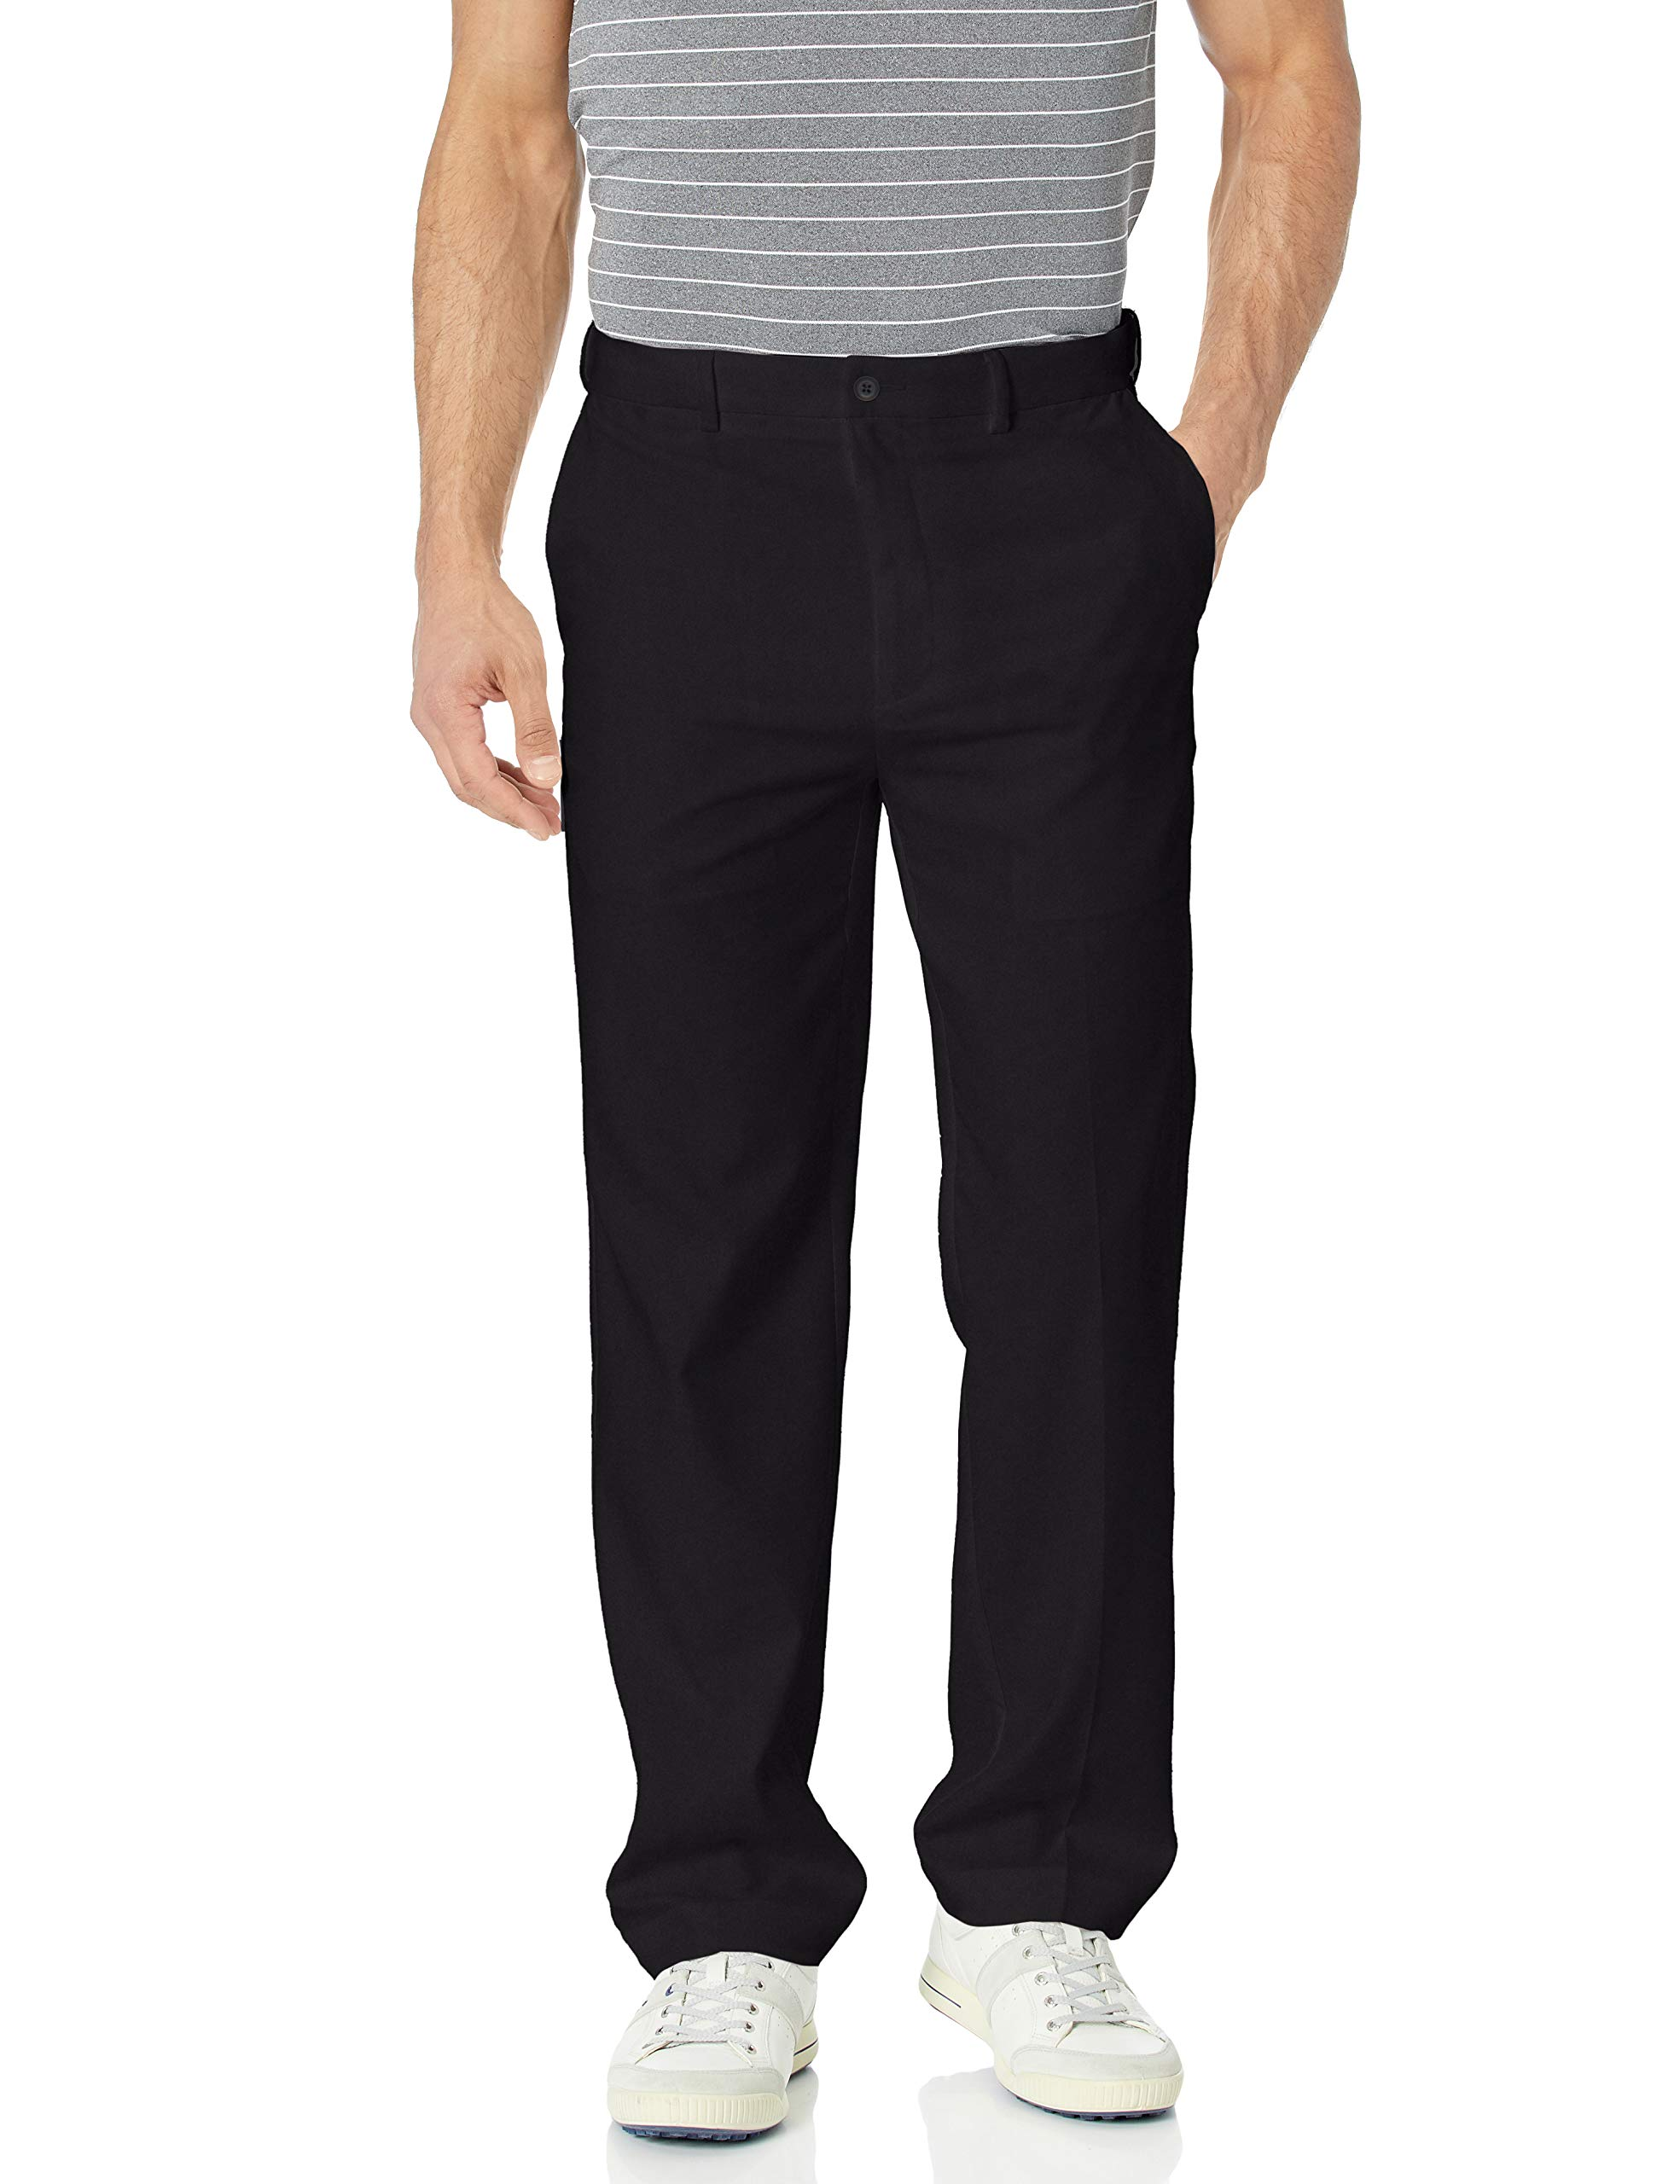 PGA TOUR Men's Flat Front Golf Pant with Expandable Waistband, Caviar, 32W x 30L by PGA TOUR